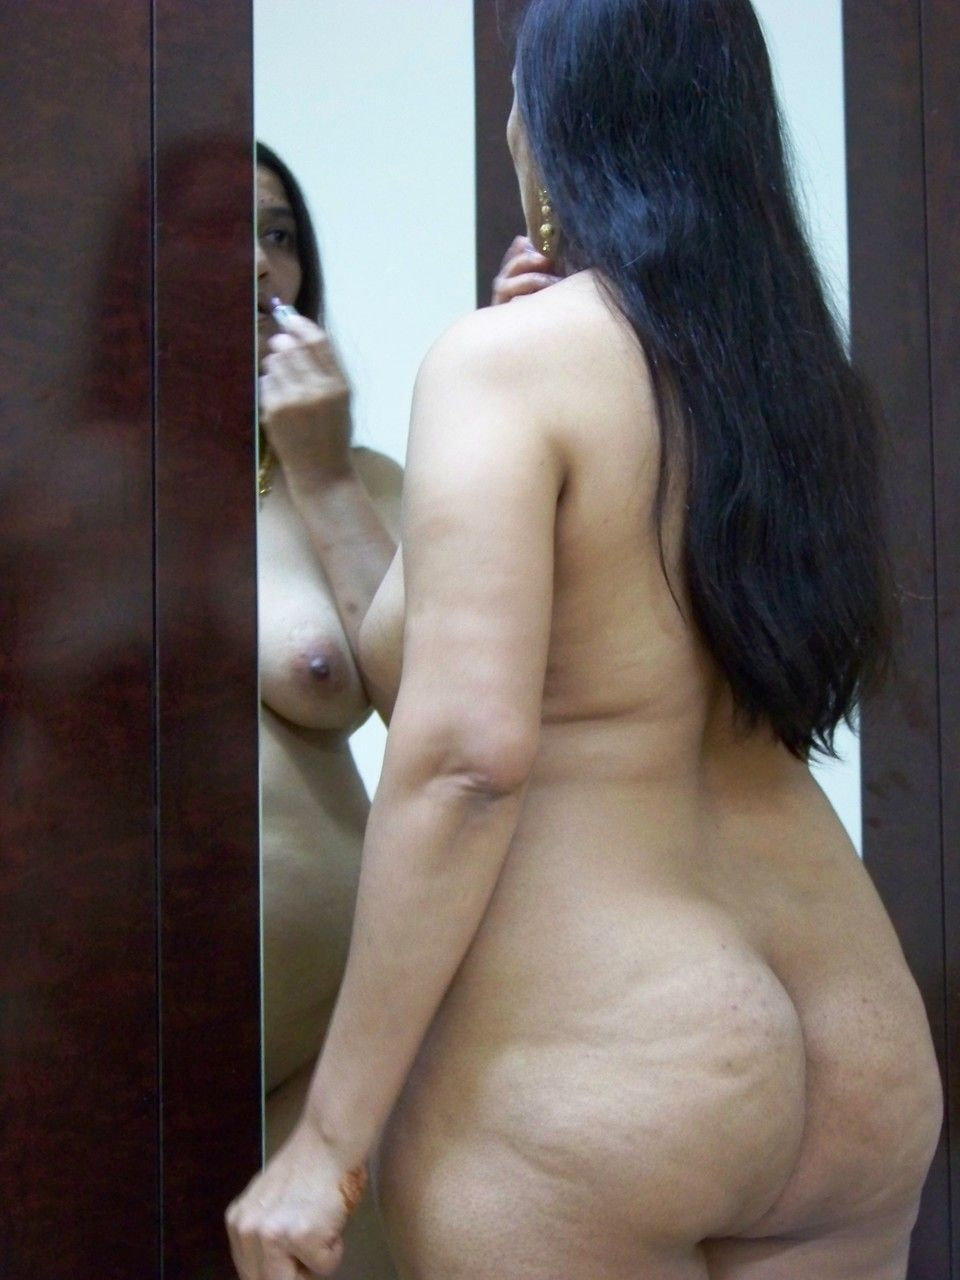 pini'm boy on desi big ass | pinterest | desi, indian girls and